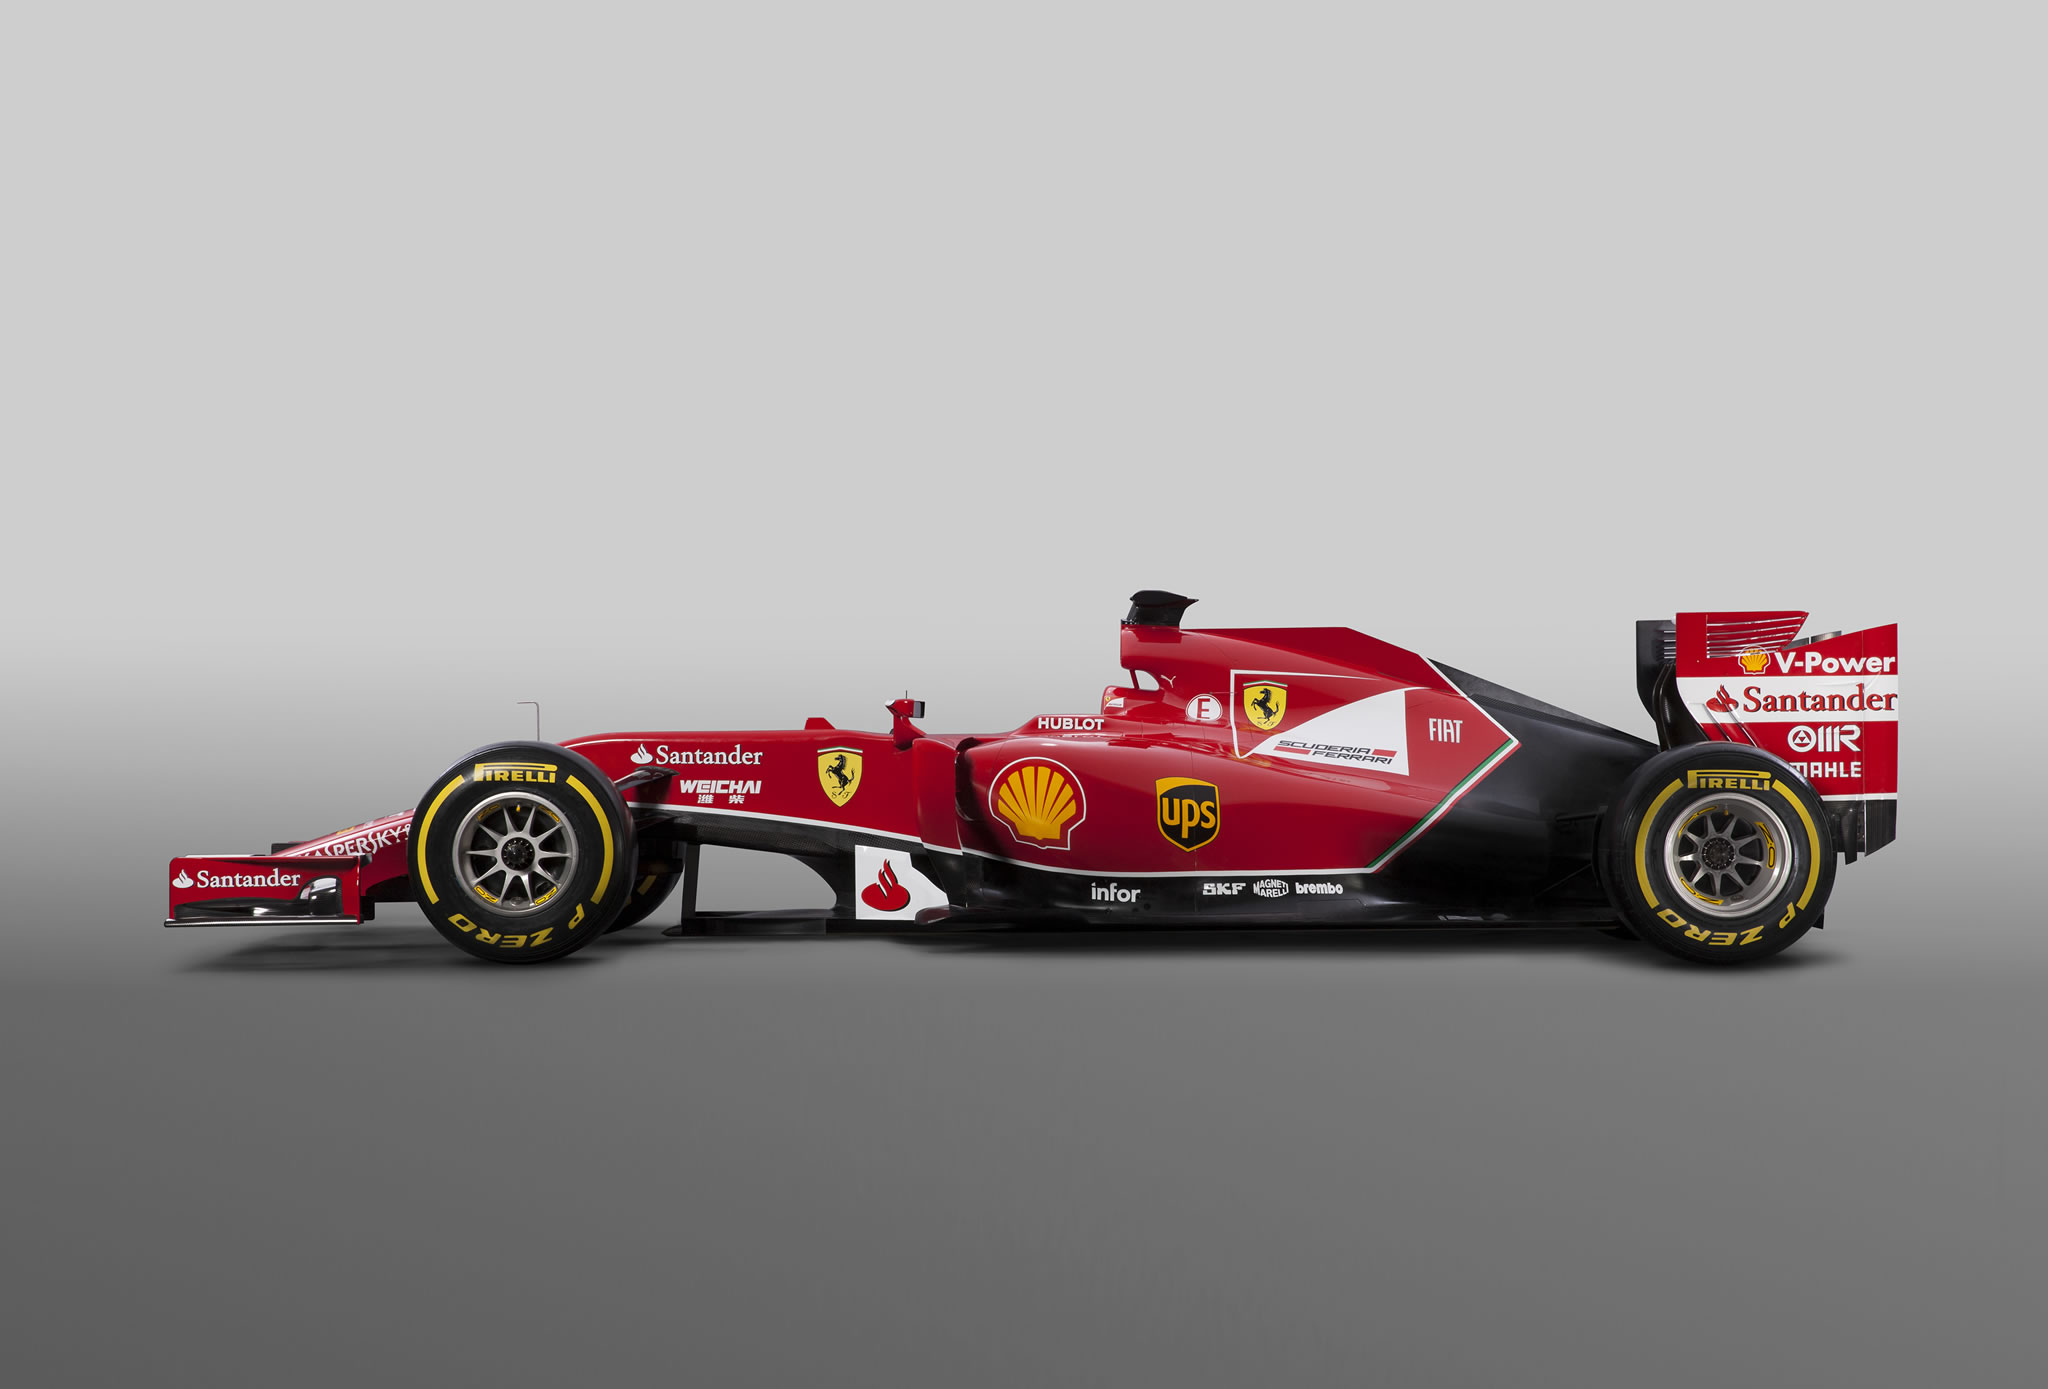 2014 Ferrari F14 T Formula 1 Car Side Photo Scuderia